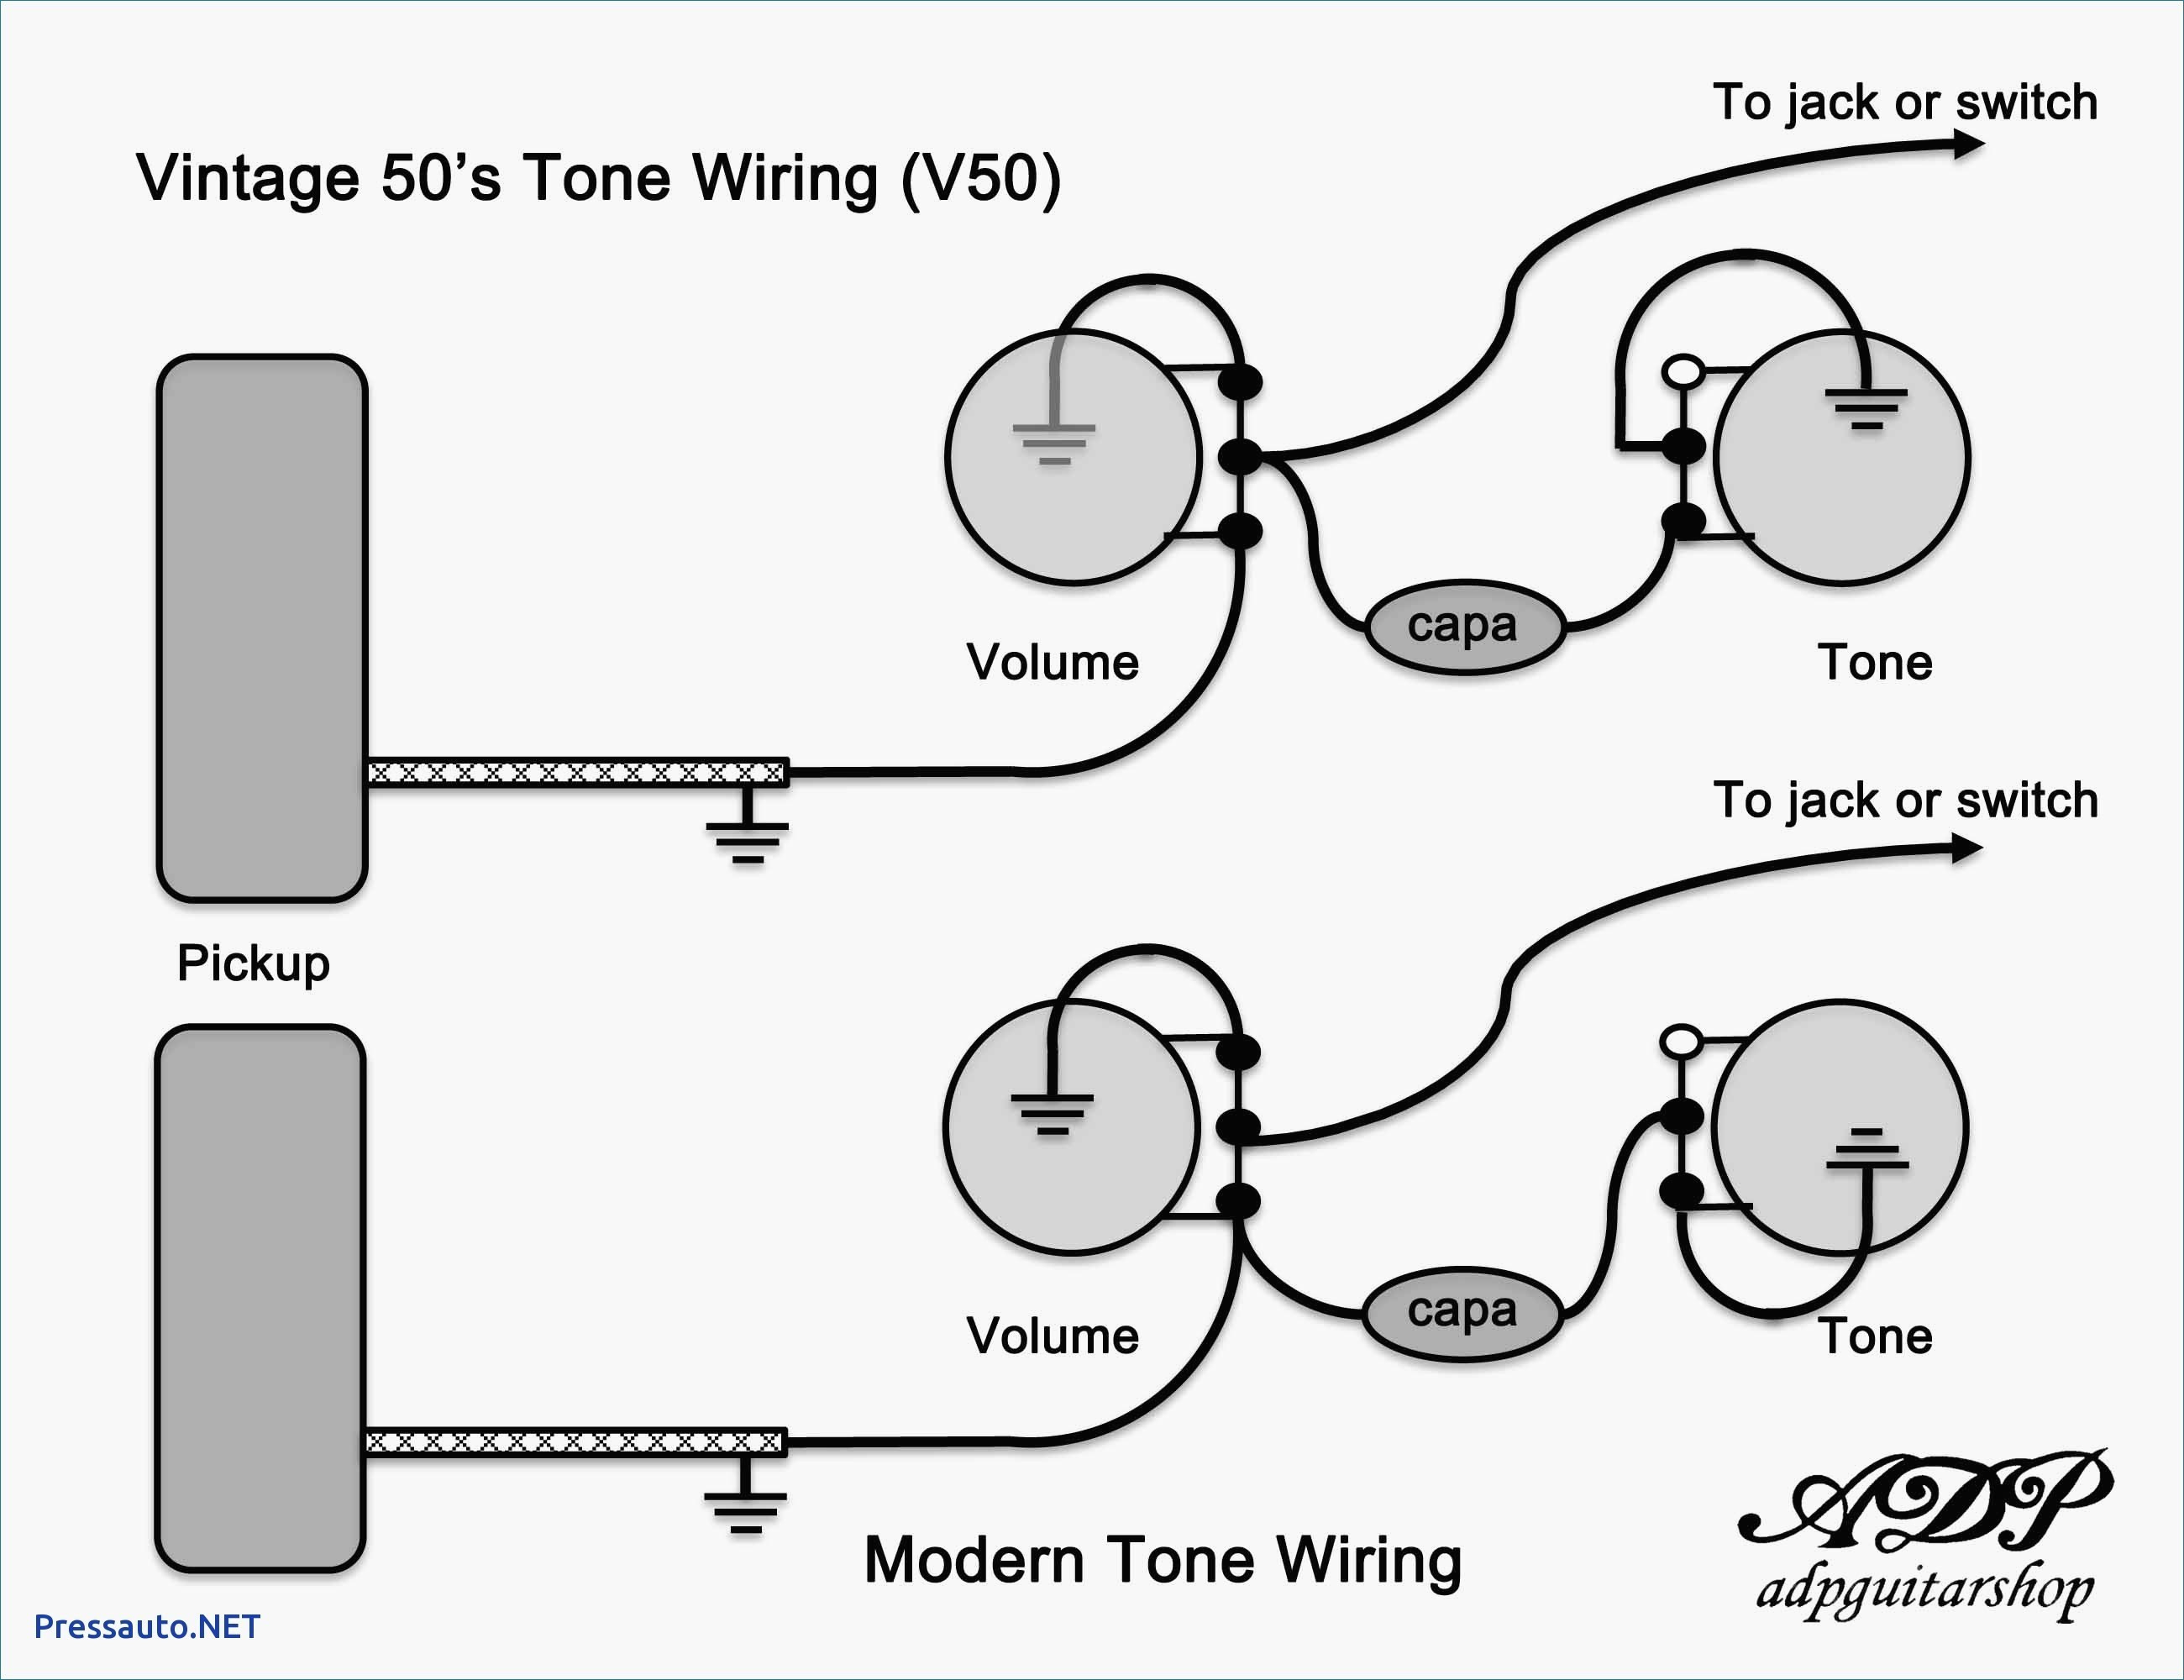 epiphone les paul special wiring diagram Download-Gibson Les Paul Special Wiring Diagram New Modern Wiring Diagram Les Paul Best Vintage Wiring Diagram Les Paul 8-m